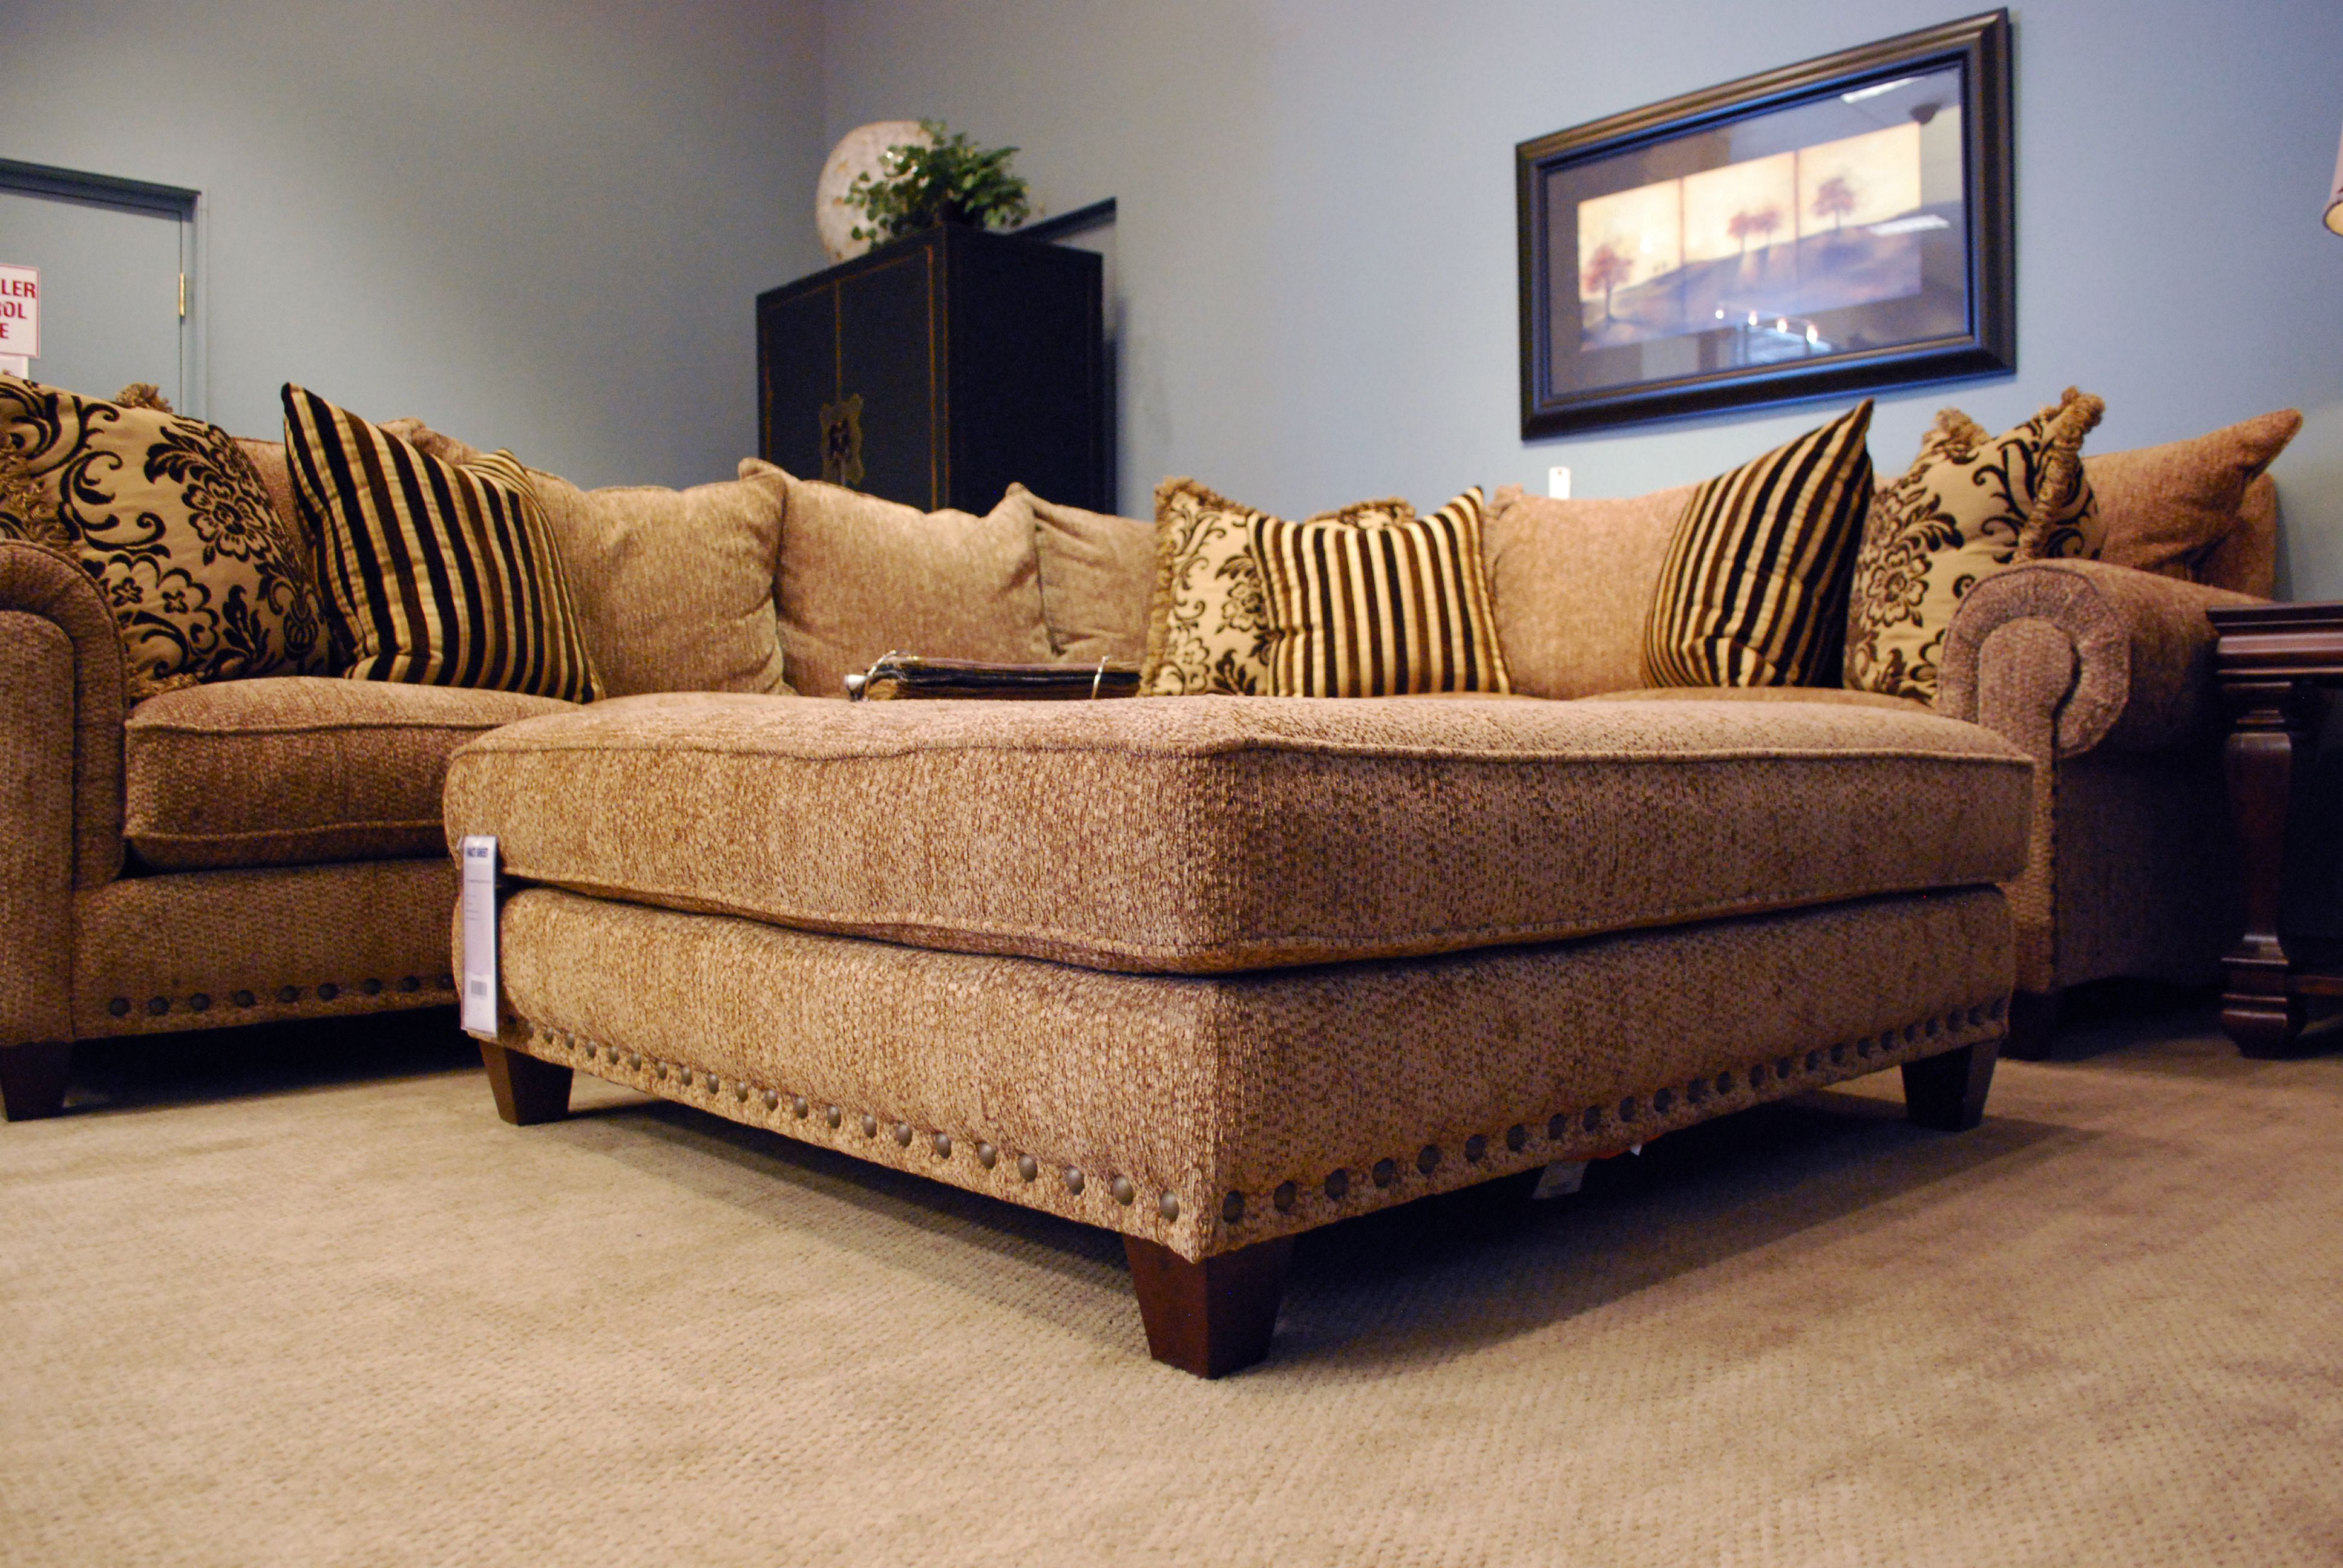 Robert Michaels Ltd Mammoth Butterscotch Sectional Available in